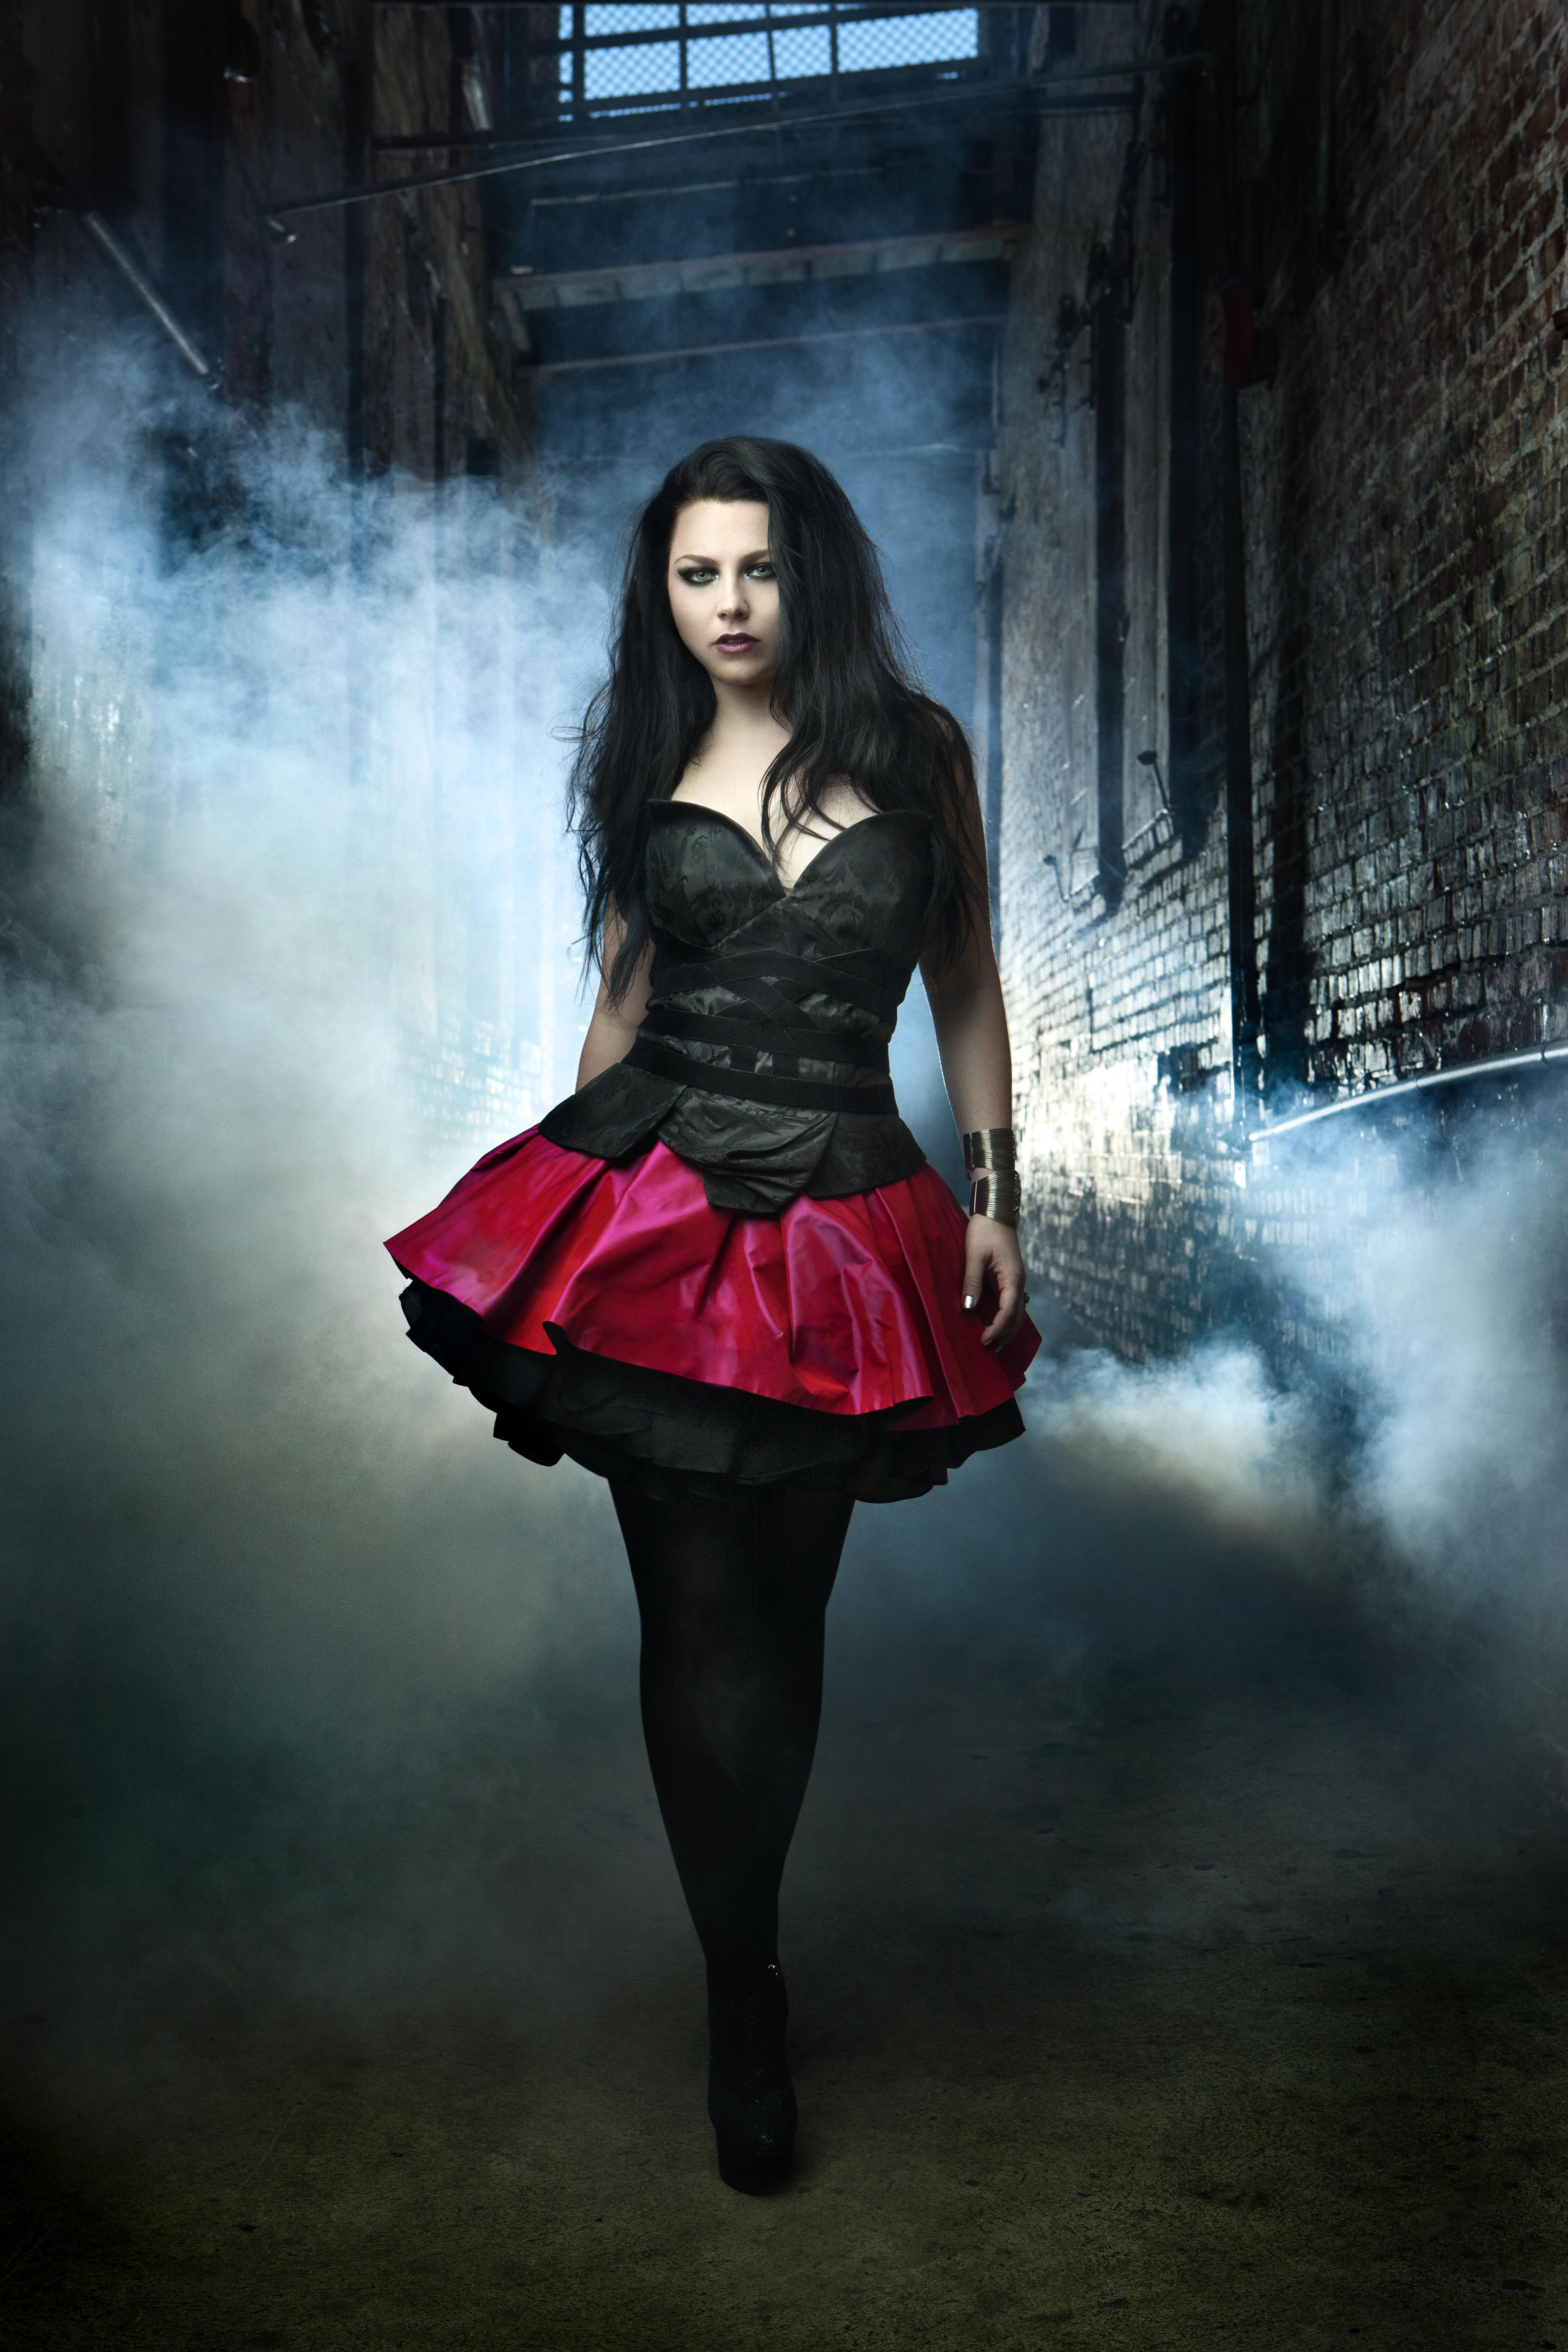 from Noel hot sexy pictures of amy lee